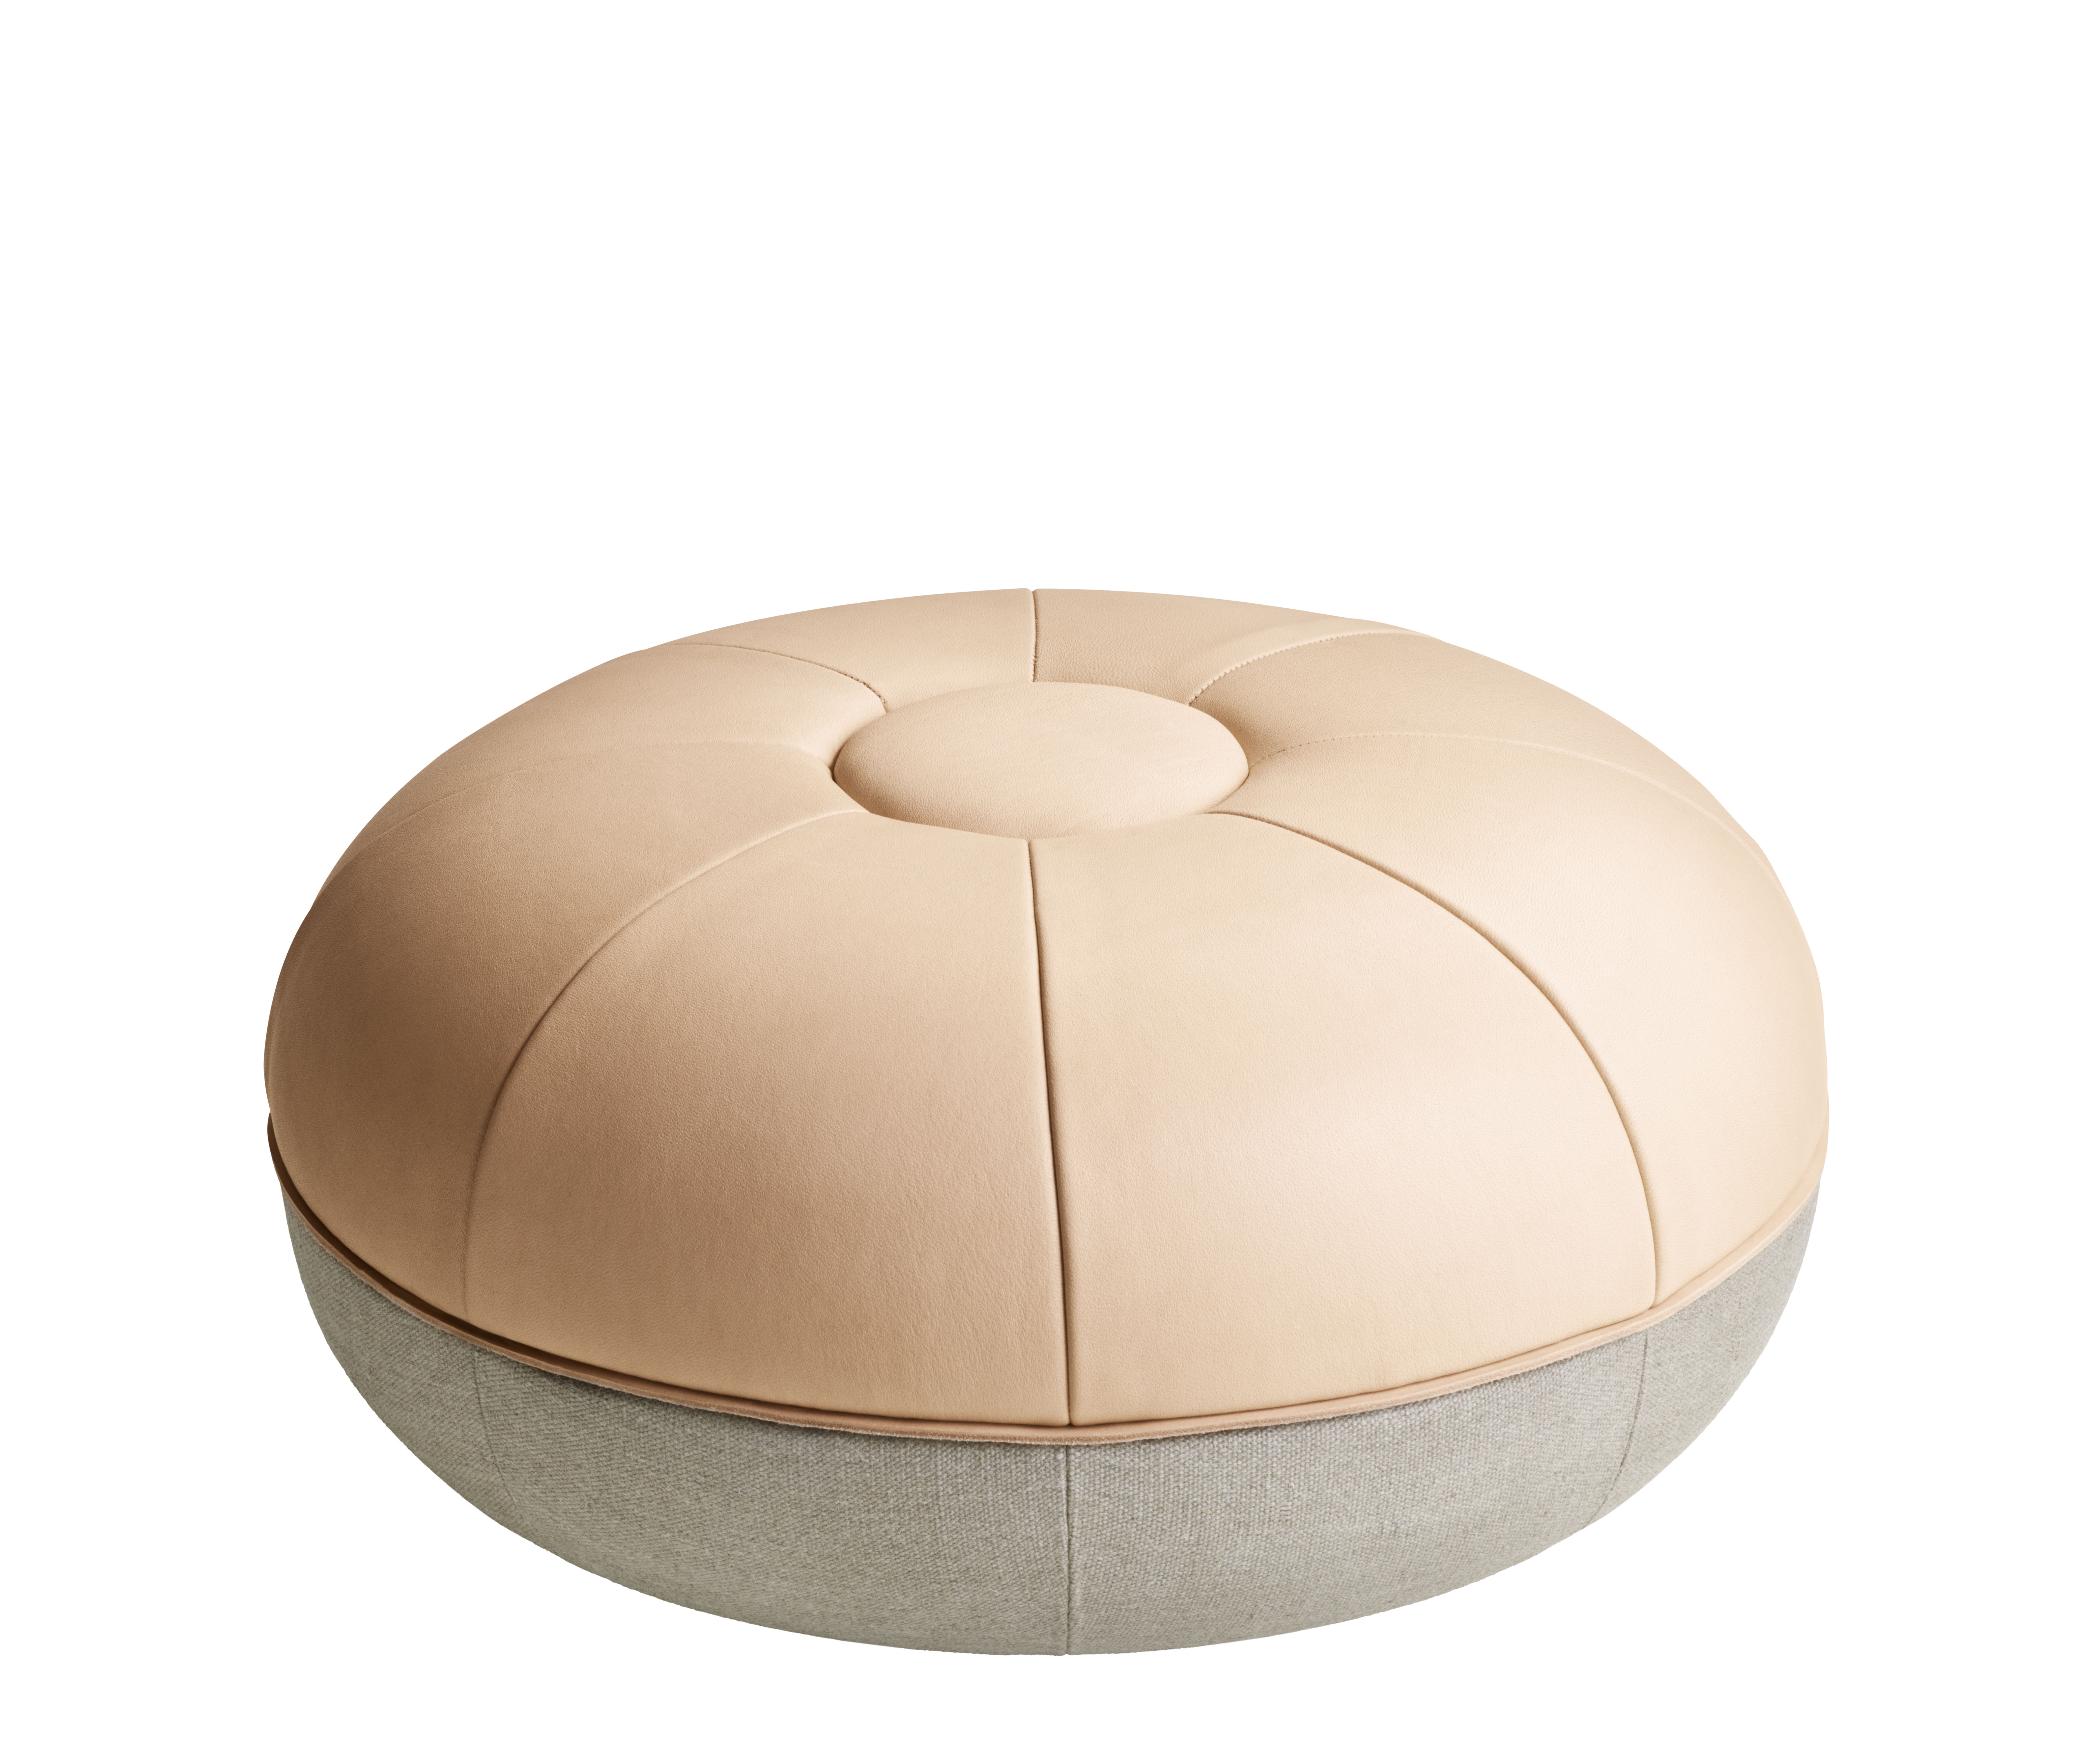 Furniture - Poufs & Floor Cushions - Pouf - / Limited edition - Leather & Linen by Fritz Hansen - Natural leather / Grey - Foam, Full grain leather, Linen